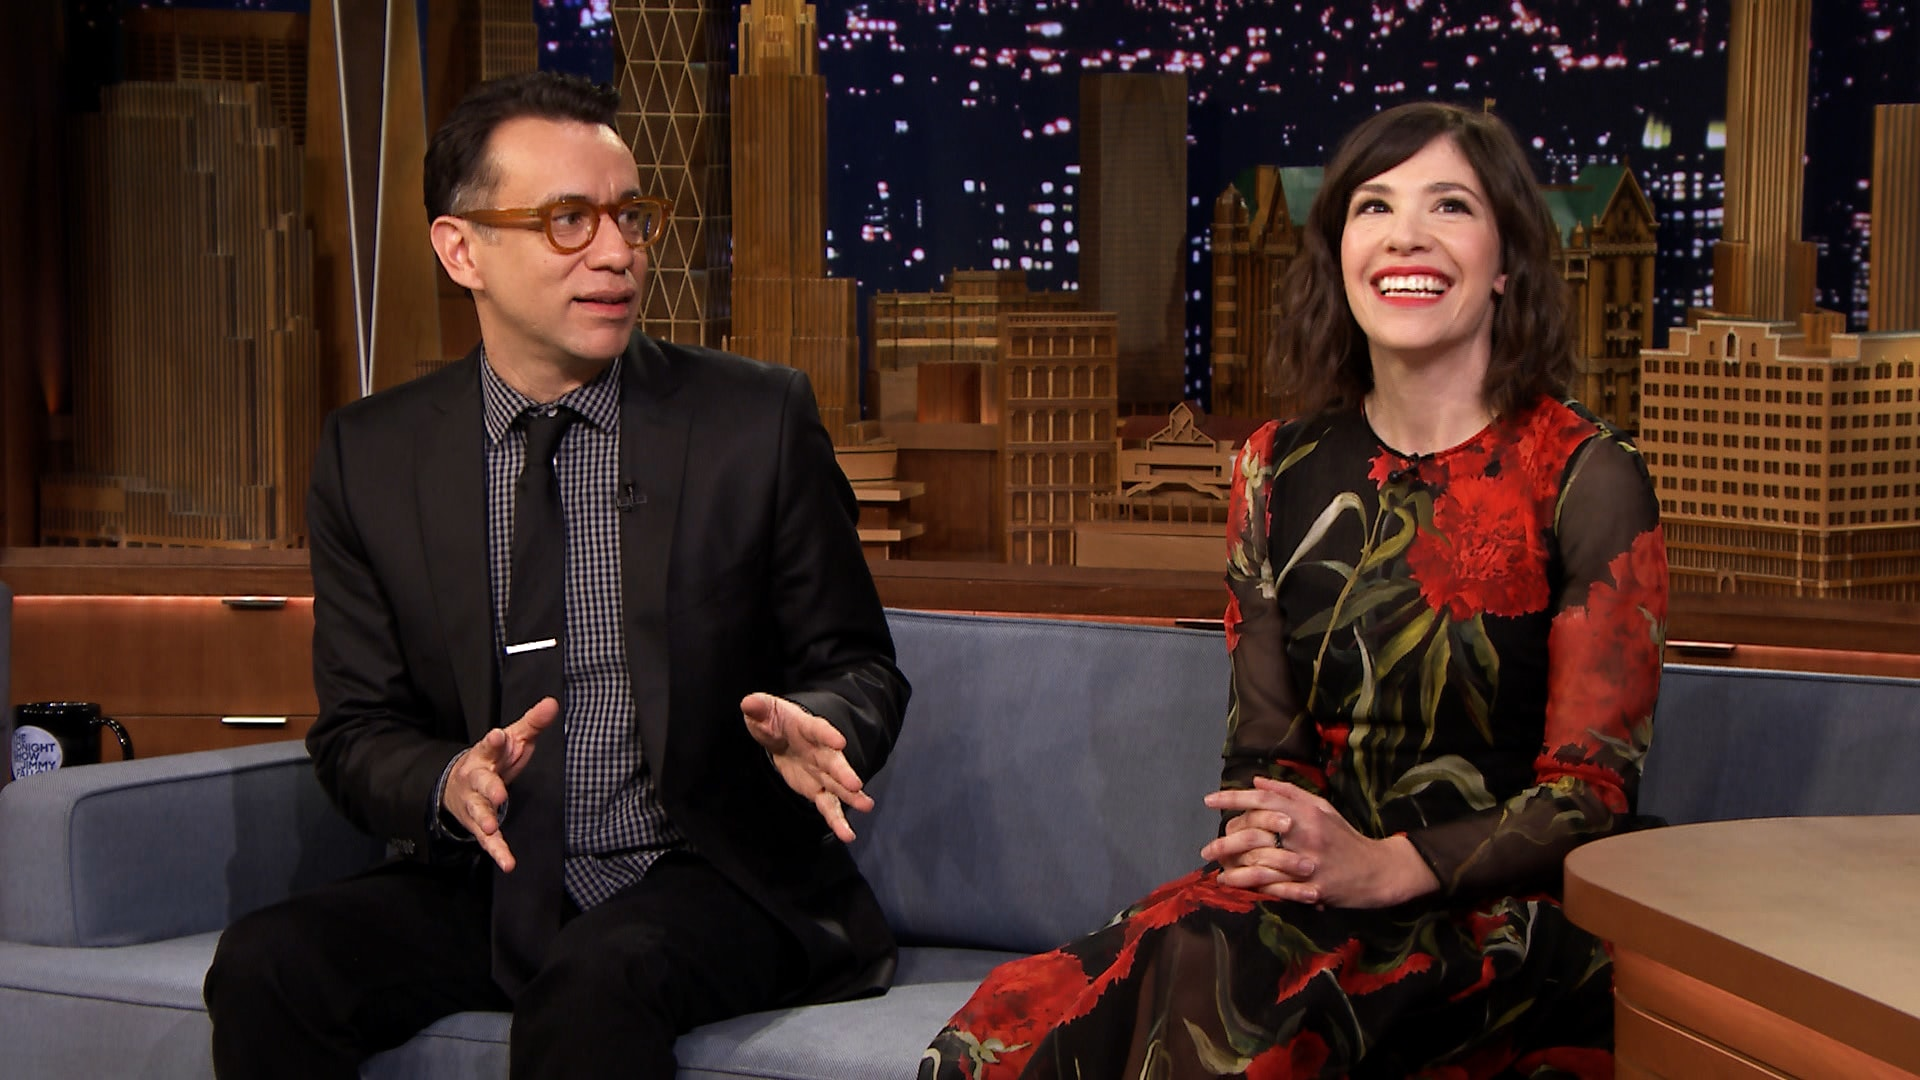 Fred Armisen free wallpapers